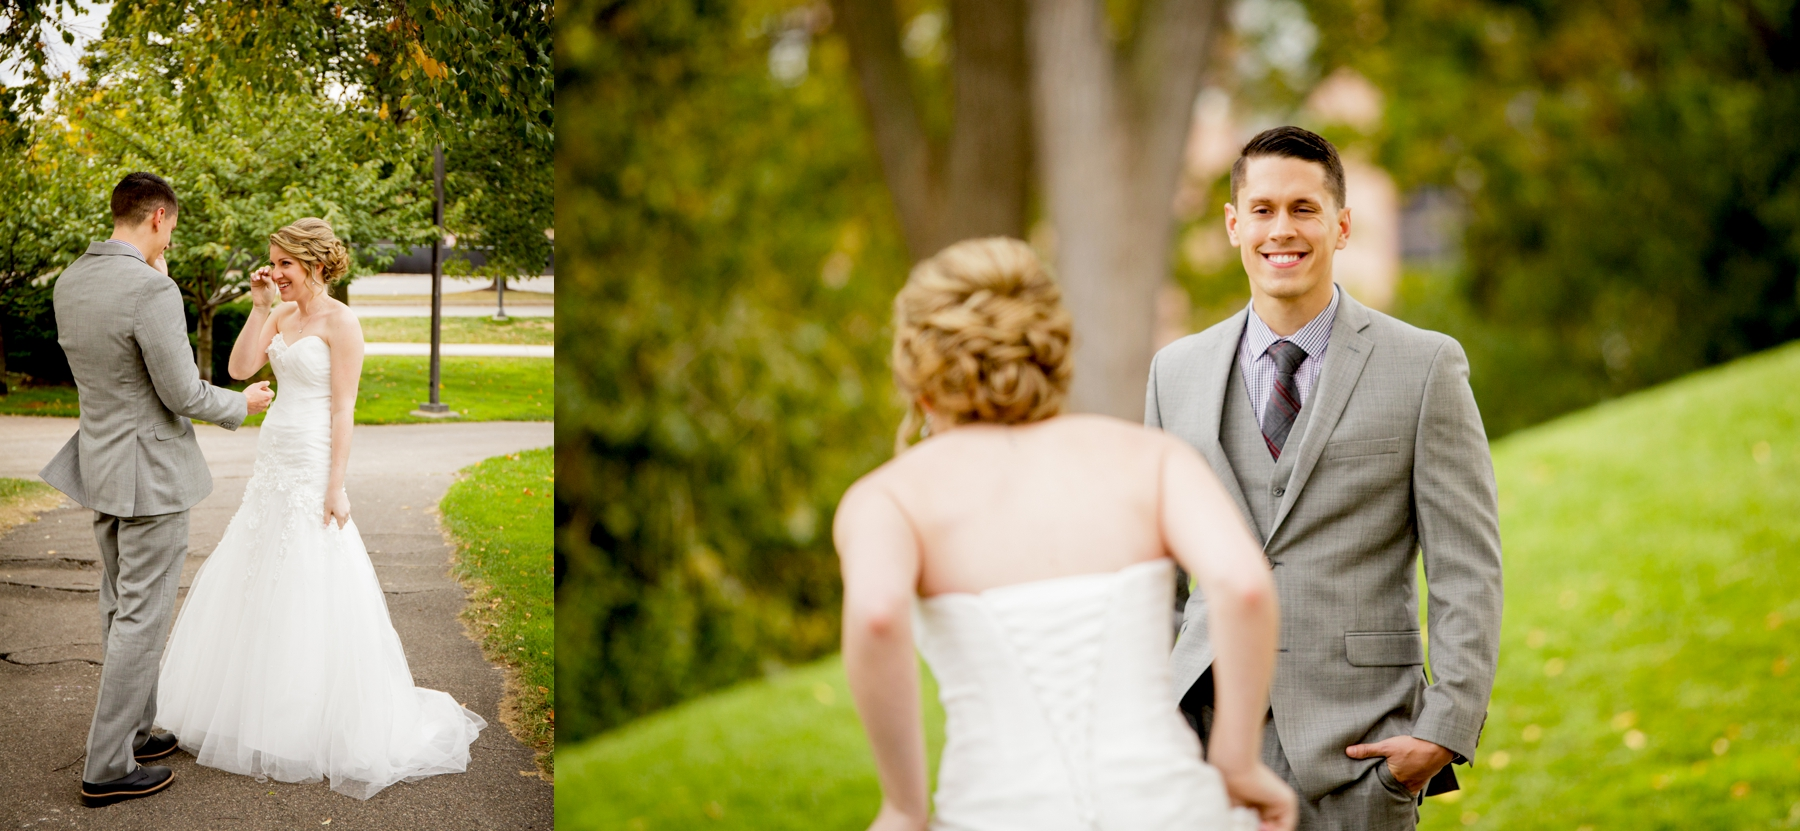 Brandon_Shafer_Photography_Kristen_Corey_Downtown_Grand_Rapids_Fall_Wedding0016.JPG